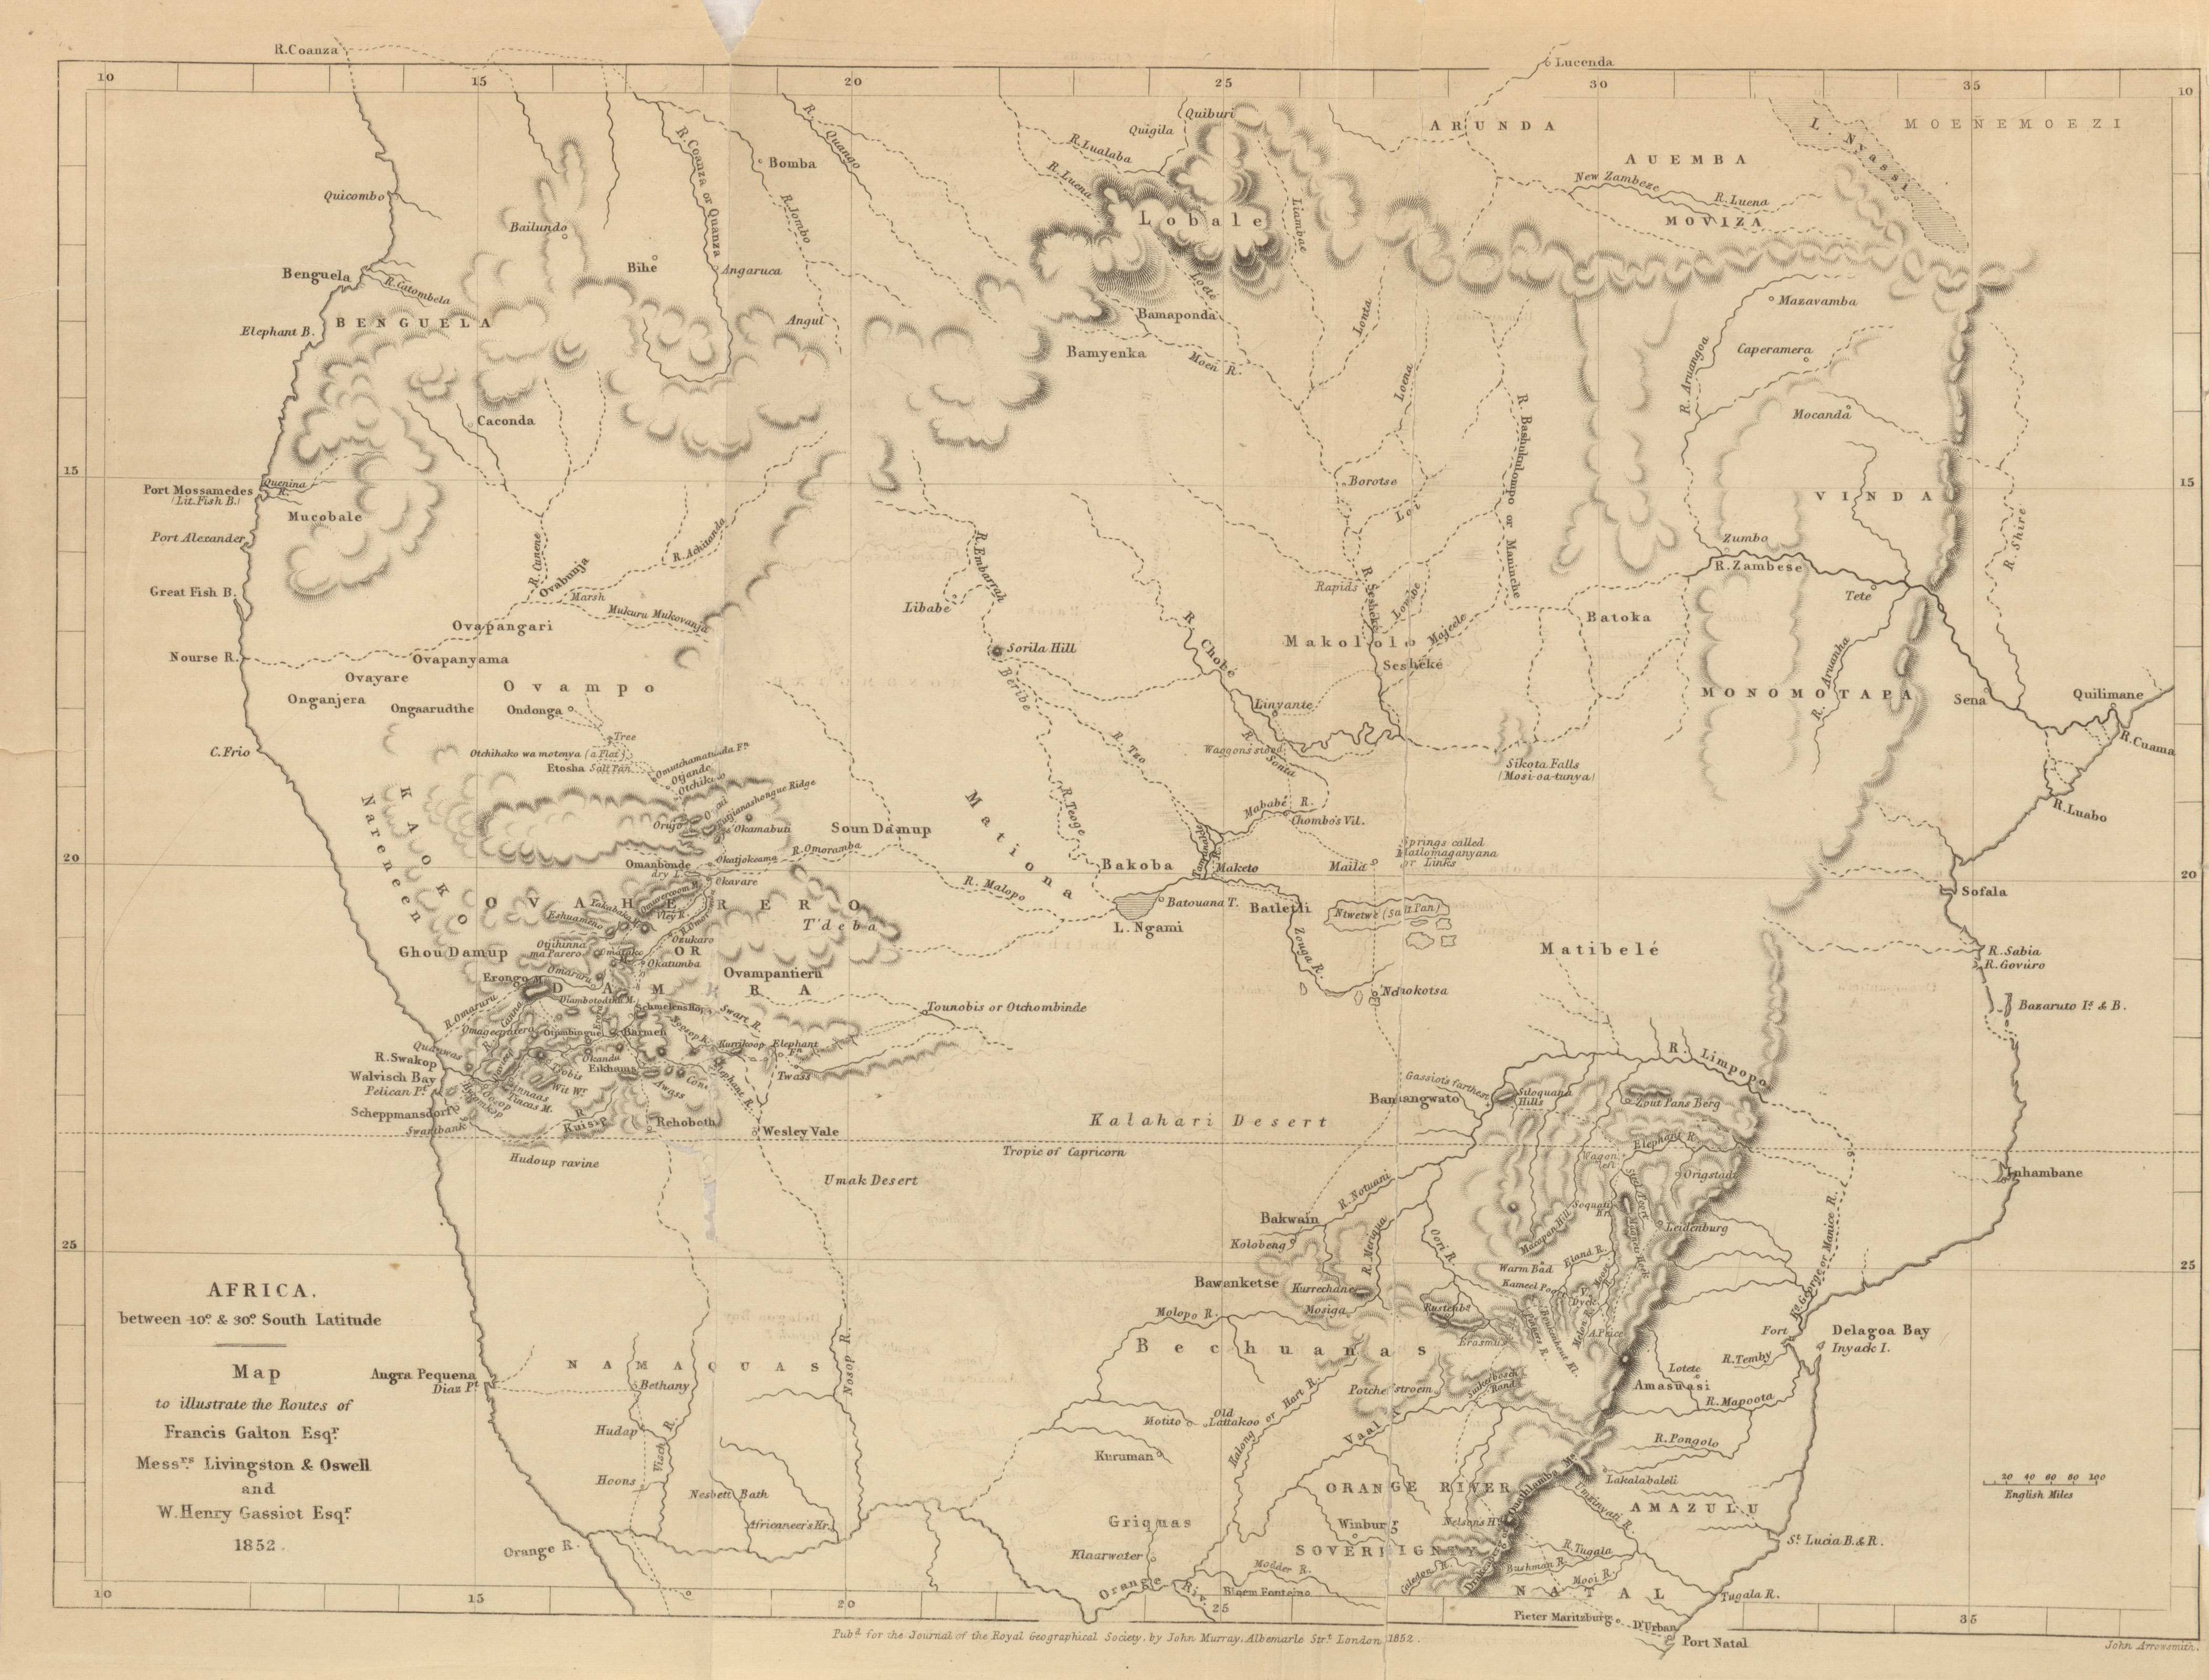 Map Of Western Australia 26th Parallel.Maps From The Journal Of The Royal Geographical Society Of London